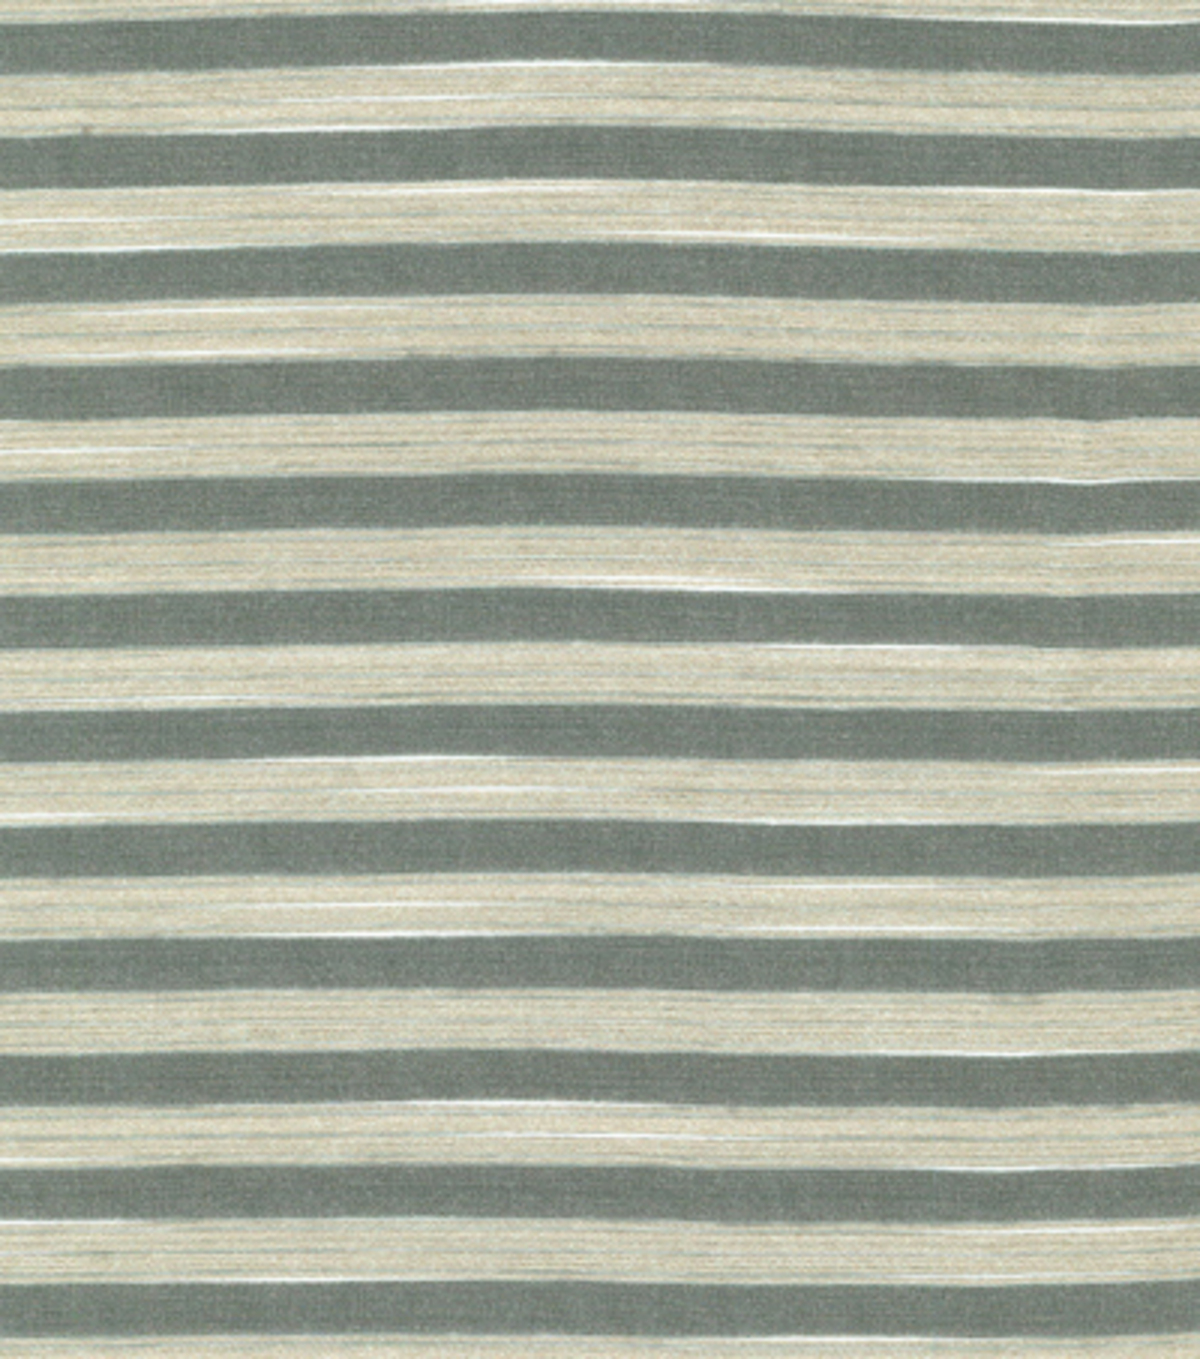 Home Decor 8\u0022x8\u0022 Fabric Swatch-Richloom Studio Zuppa Shell